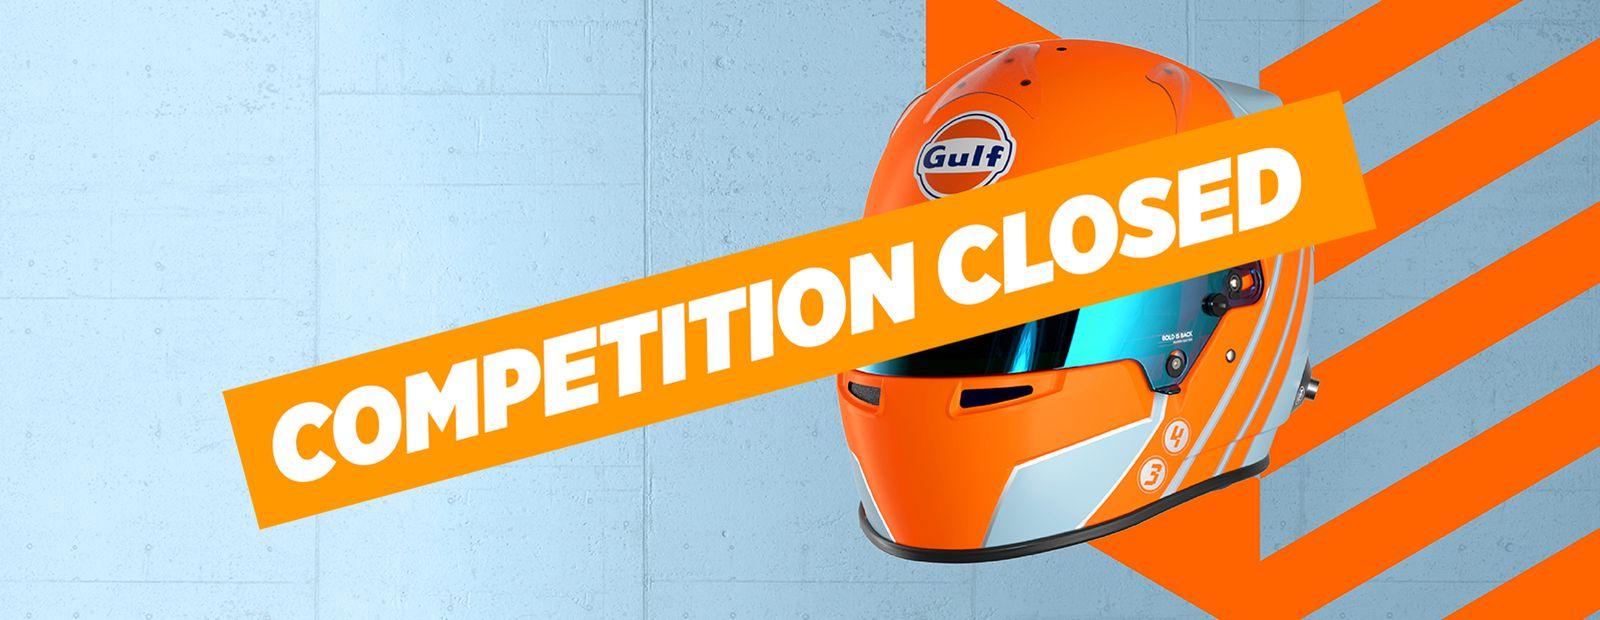 Win a signed limited edition Gulf helmet